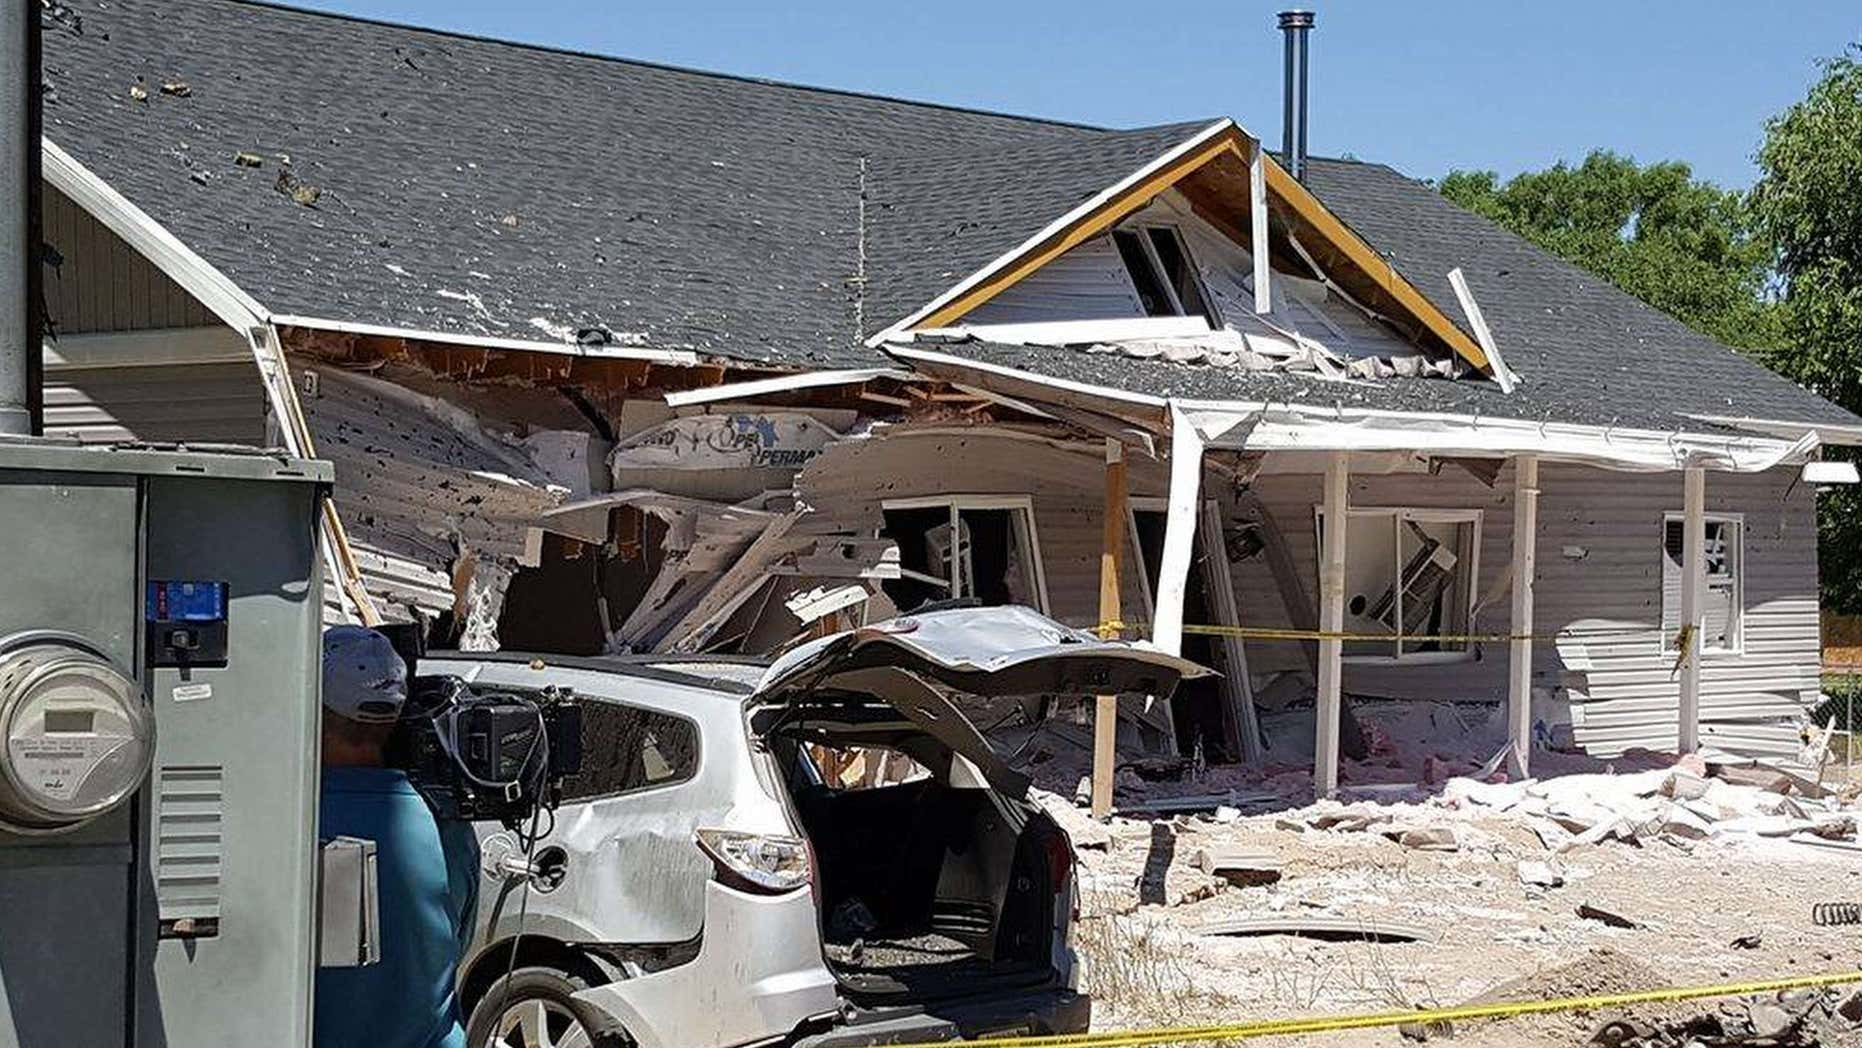 This July 14, 2016 photo provided by Dennis Sanders shows a house in Panaca, Nev. after it was destroyed by explosives.